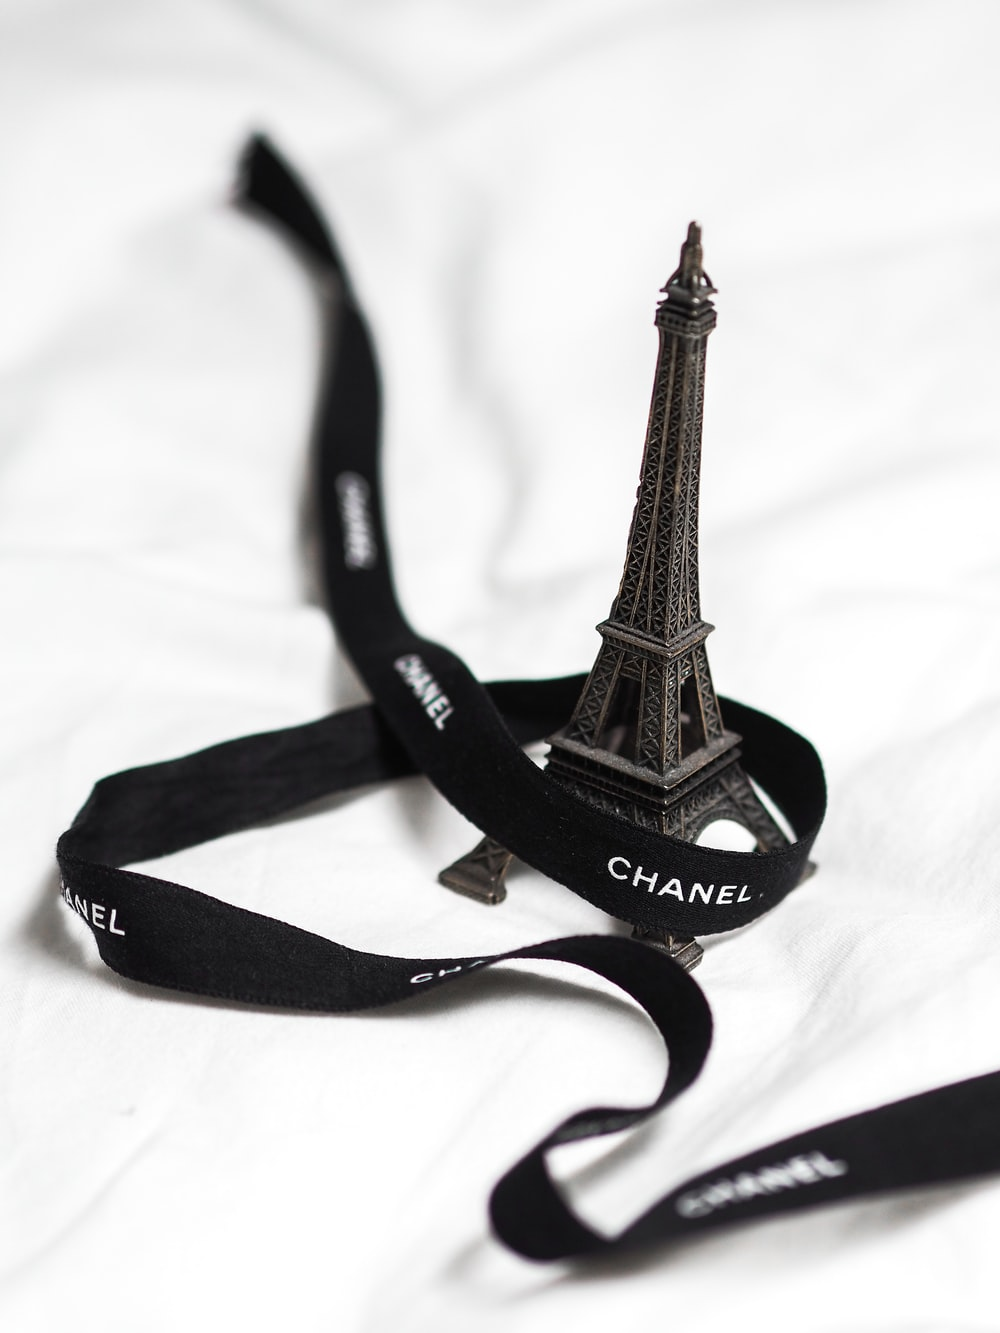 eiffel tower scale model on white textile